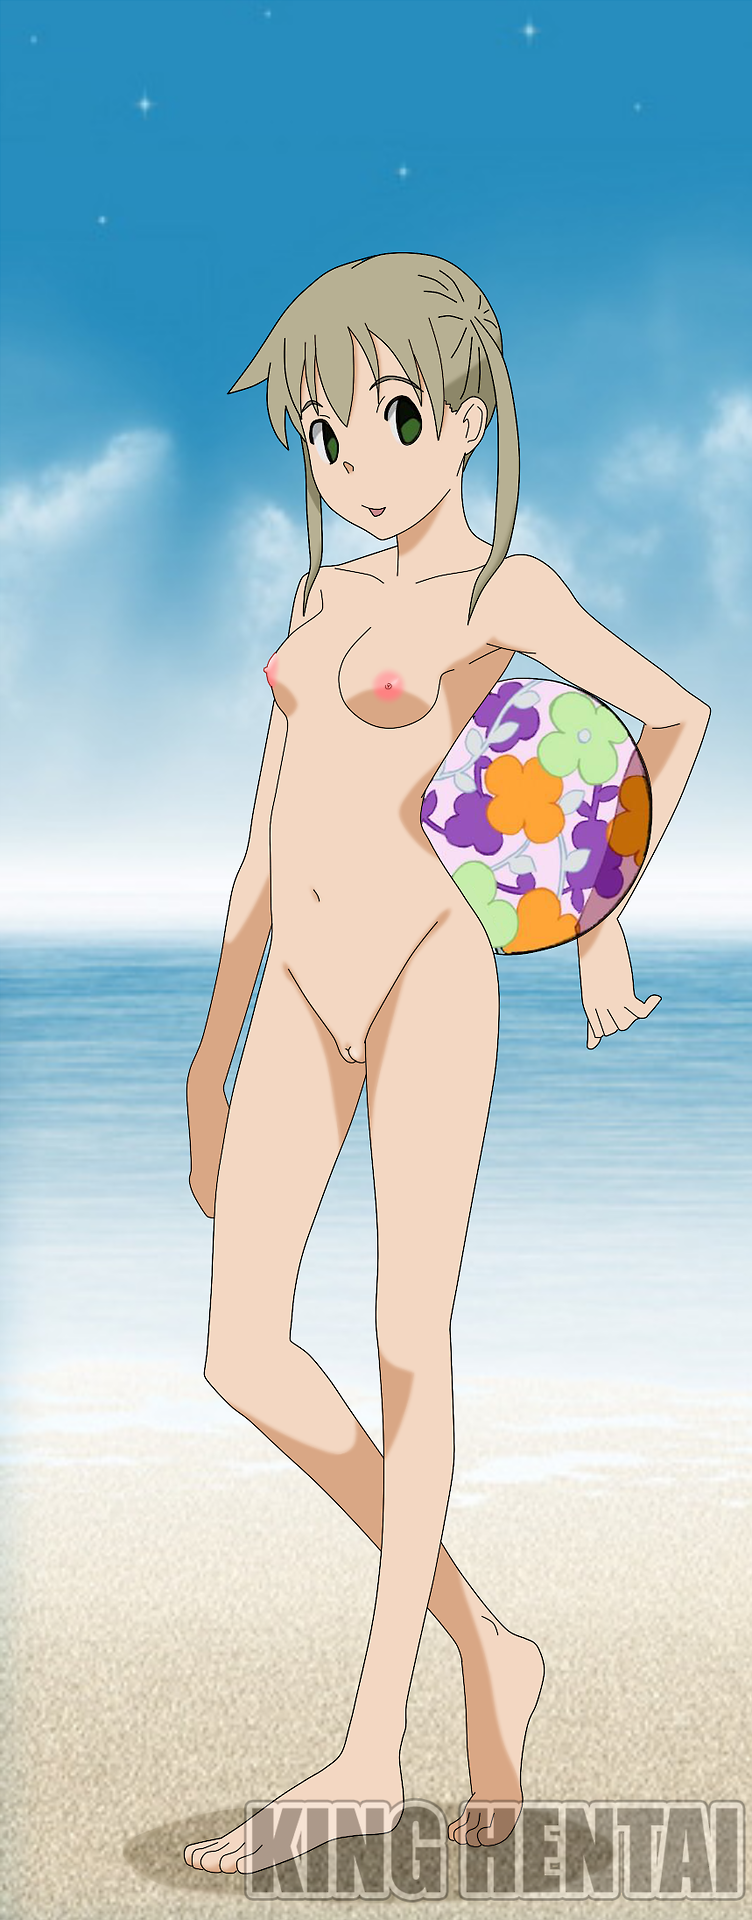 Who wants to play beach volleyball with nude Maka Albarn?